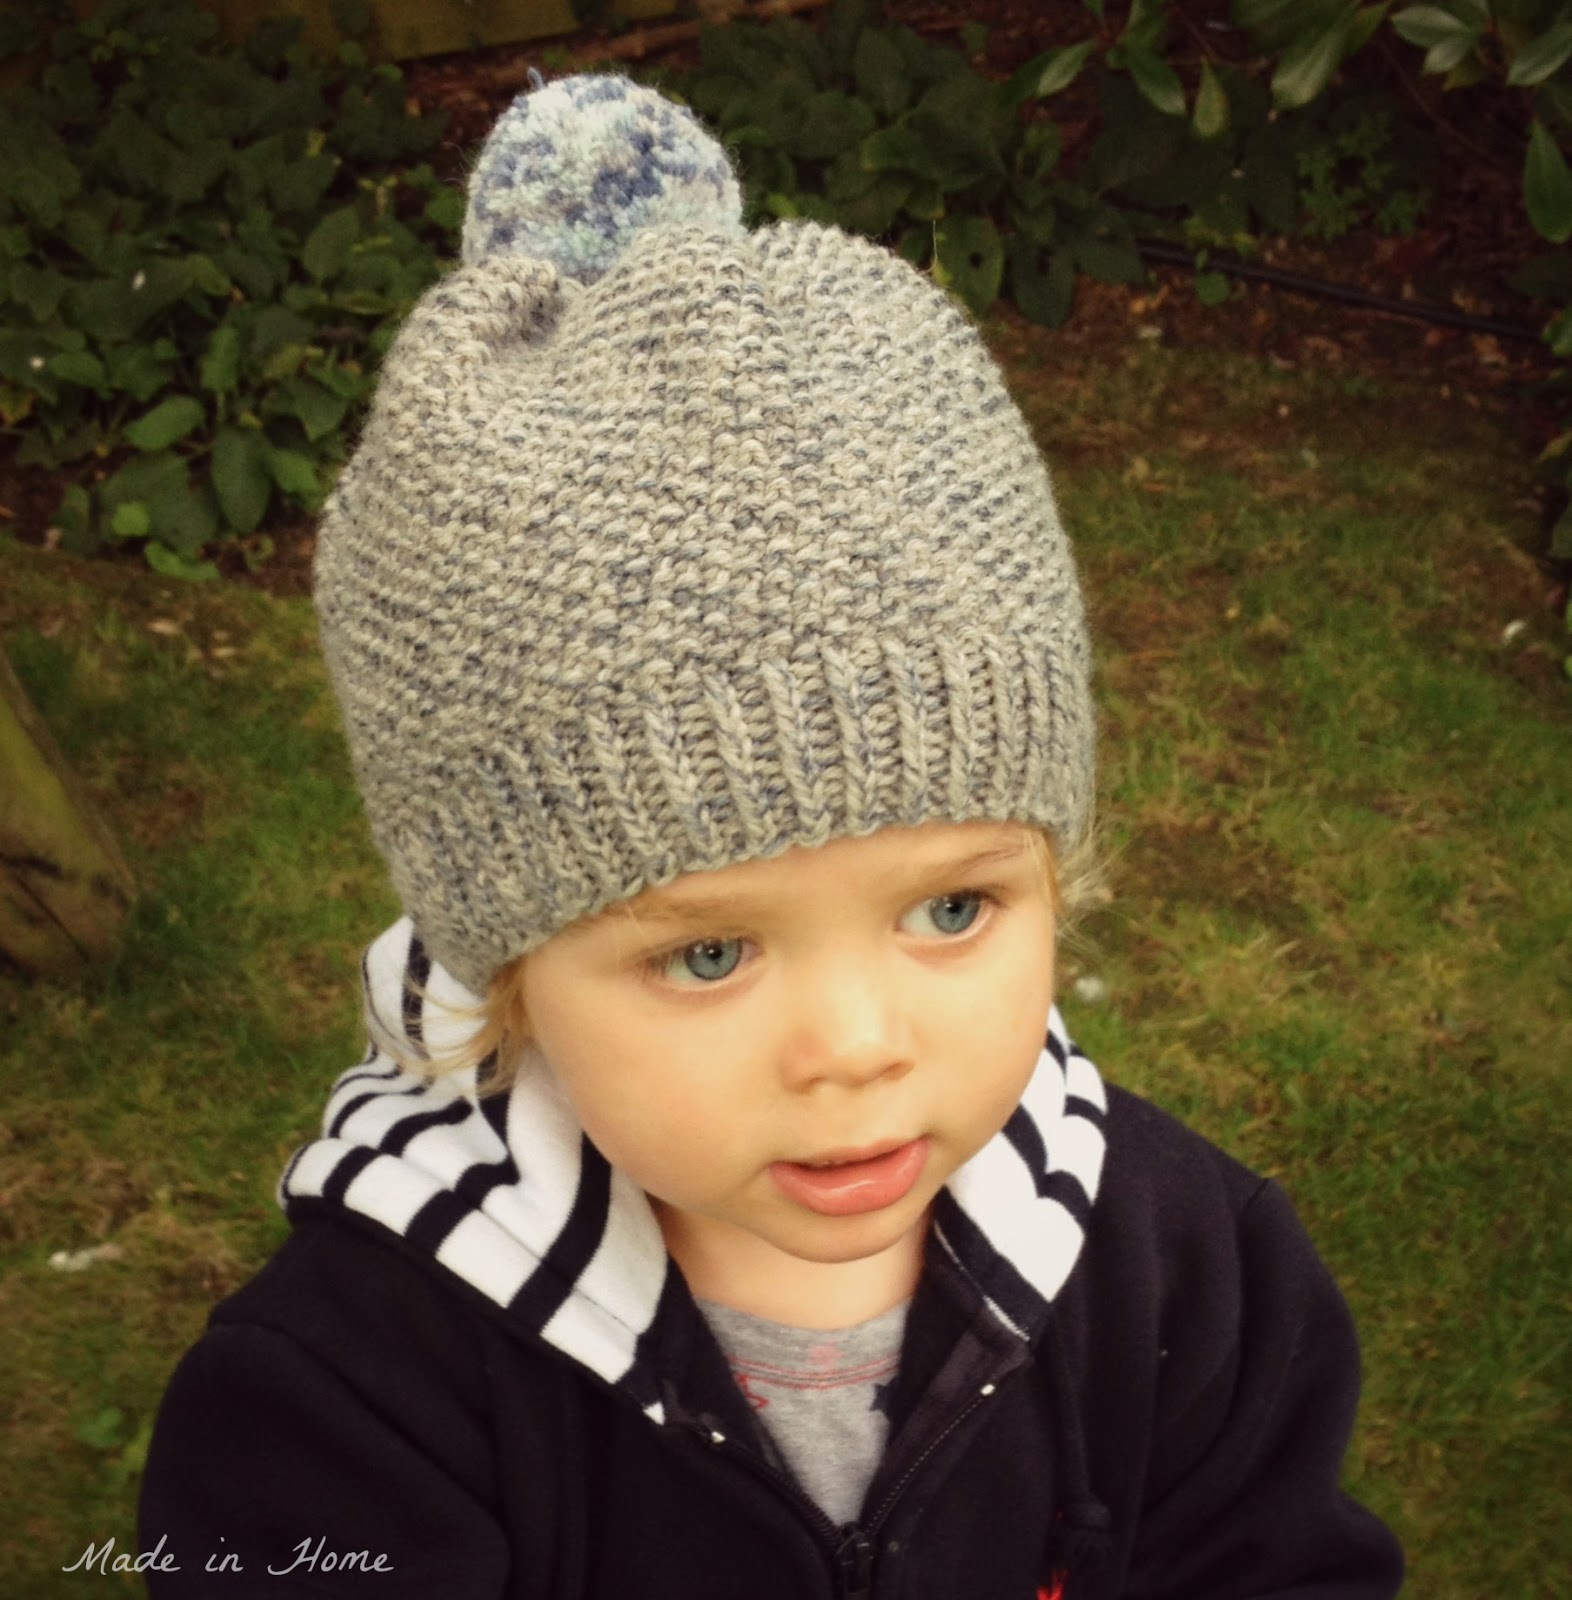 Made in Home: Toddler Pompom Beanie Hat A free pattern {Knitting}